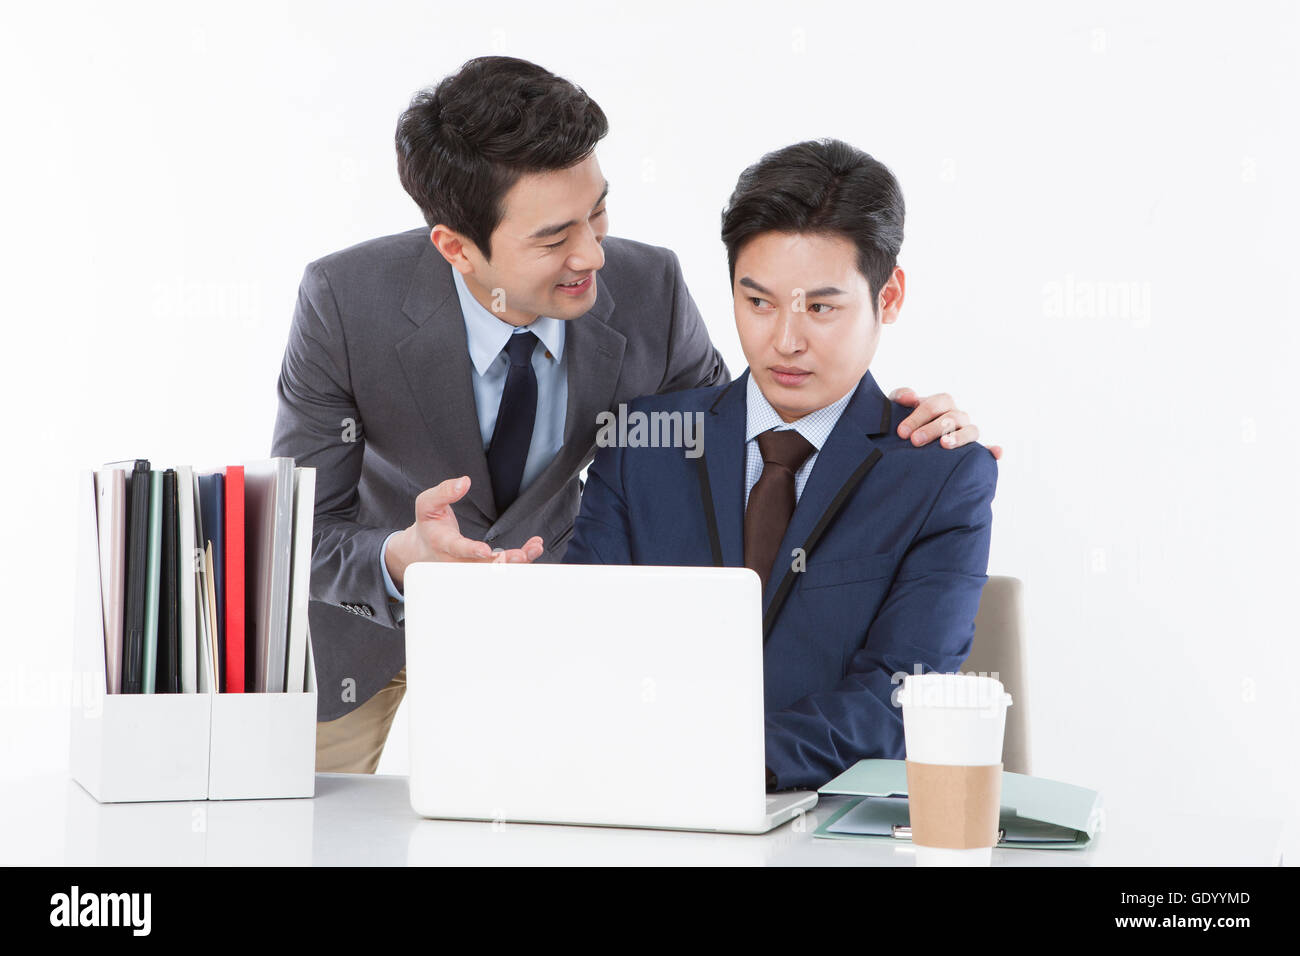 Portrait of two businessmen at work, one smiling and the other stressful at work - Stock Image